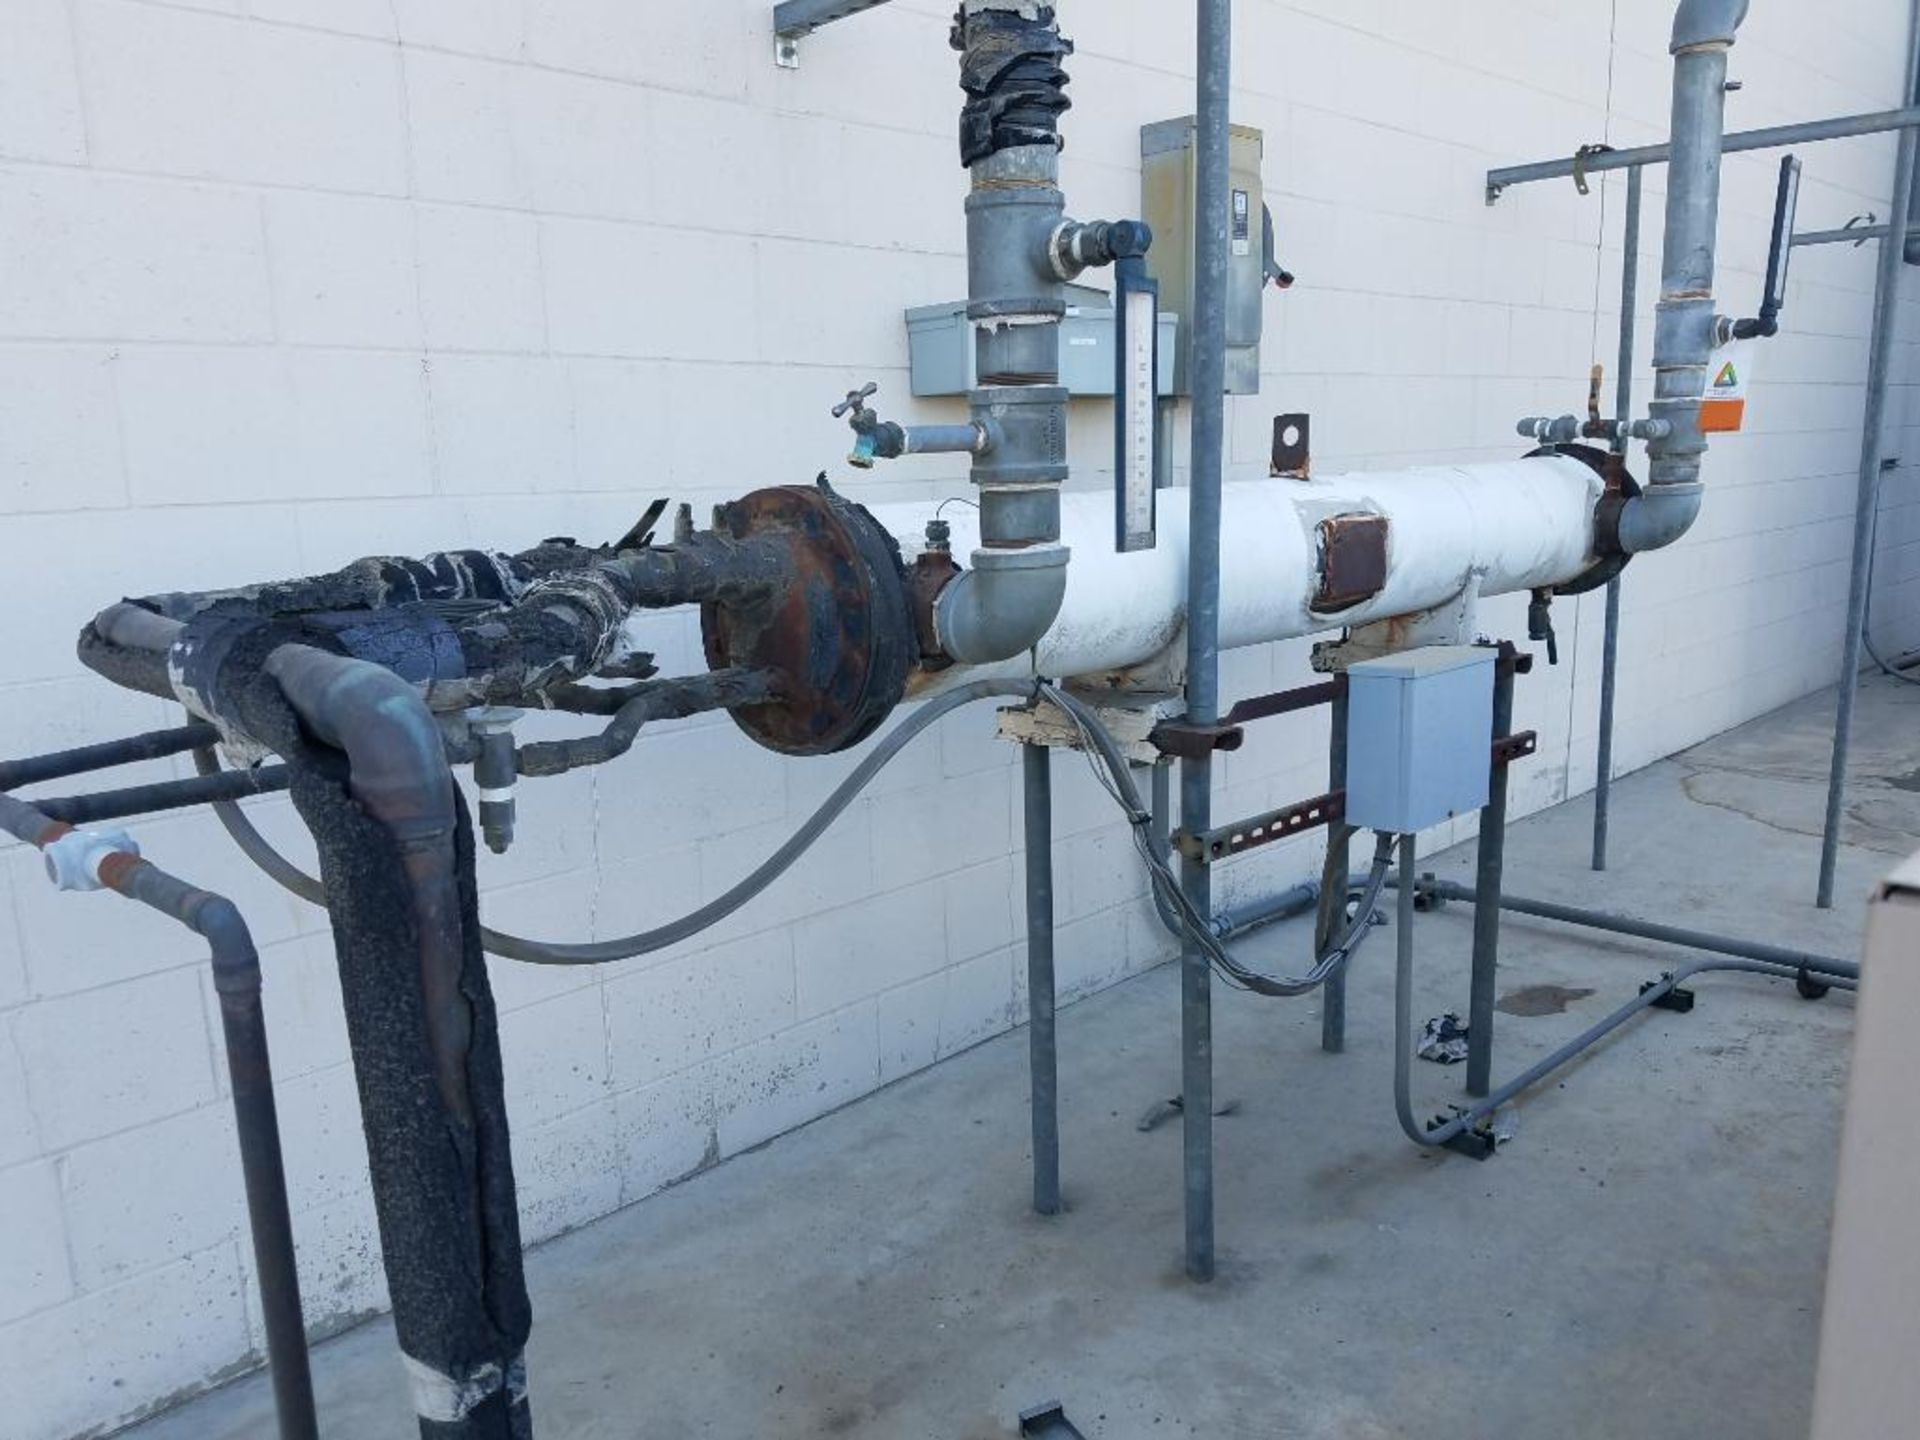 York water chiller - Image 7 of 8